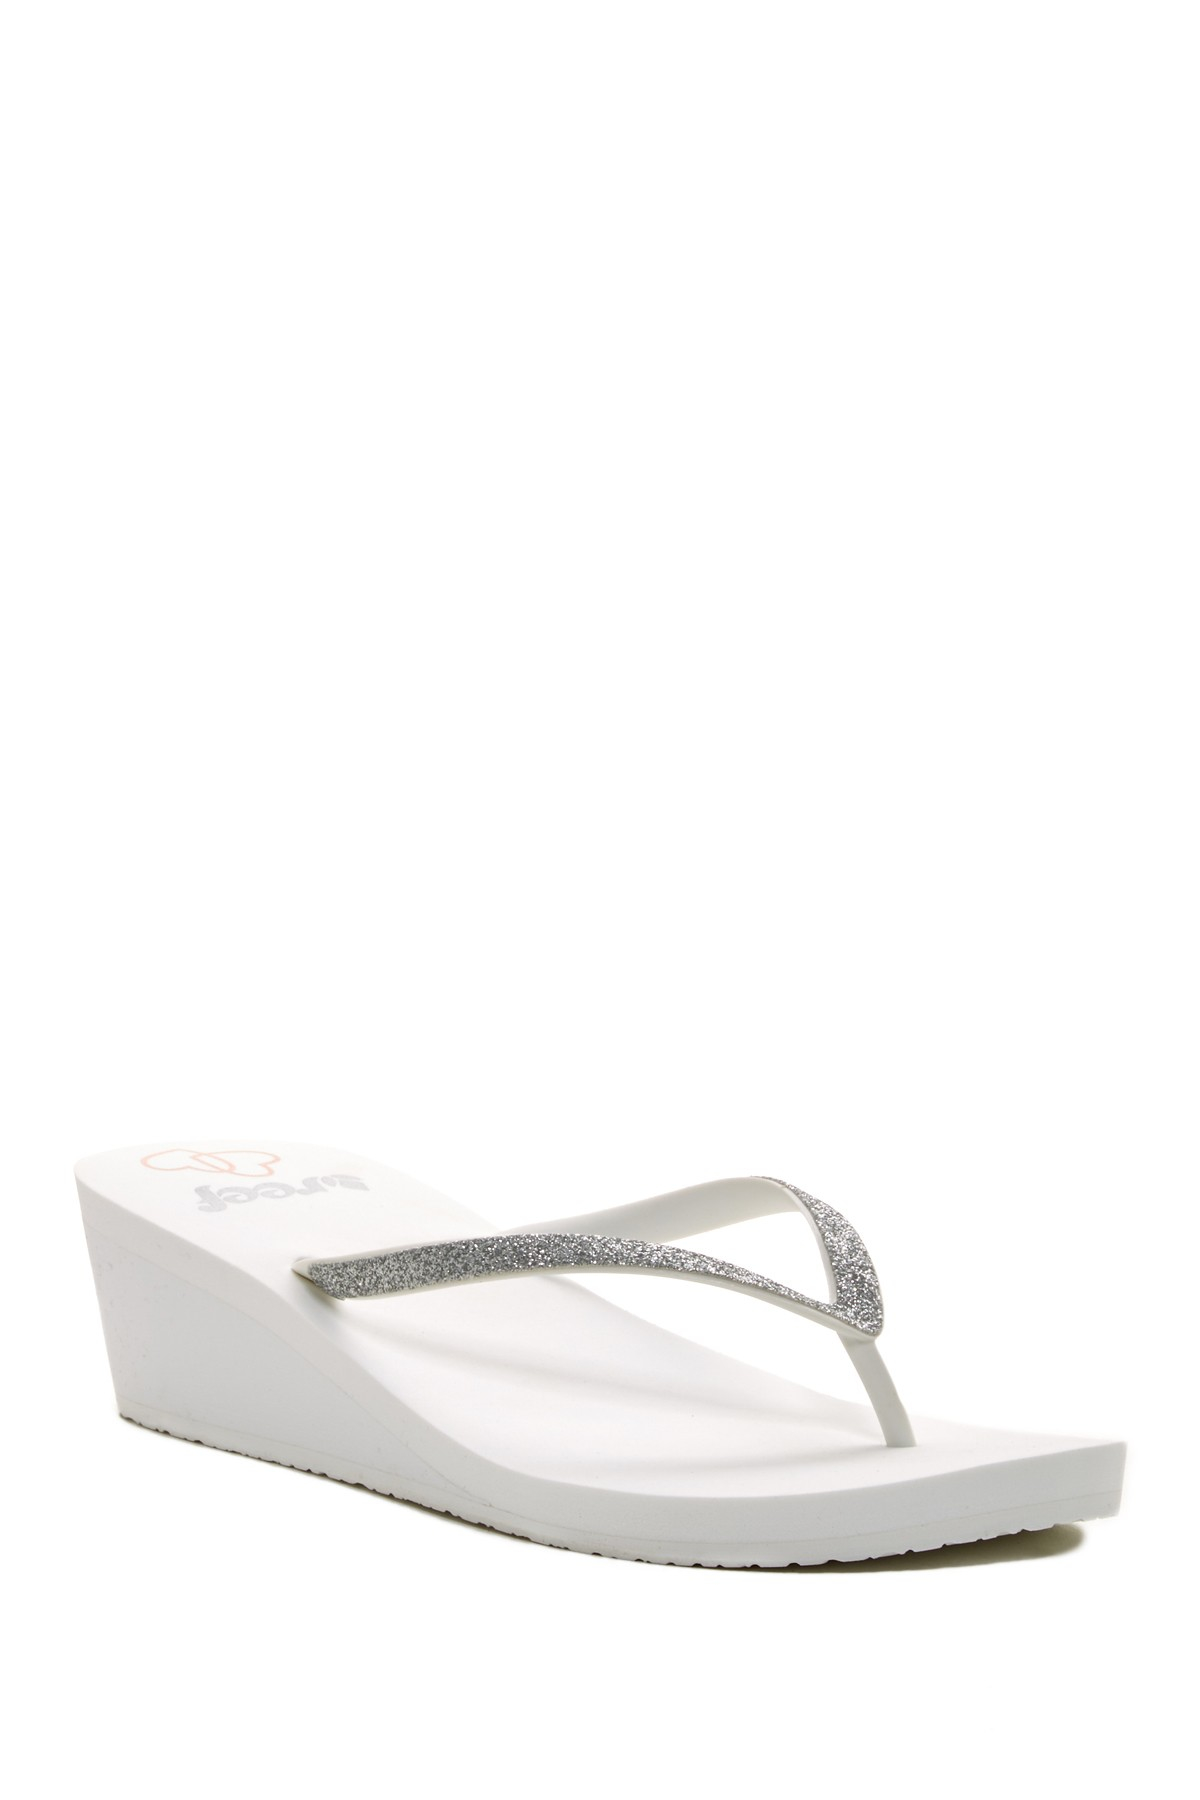 9bb14b61a5b8 Lyst - Reef Krystal Star Platform Wedding Sandal in White